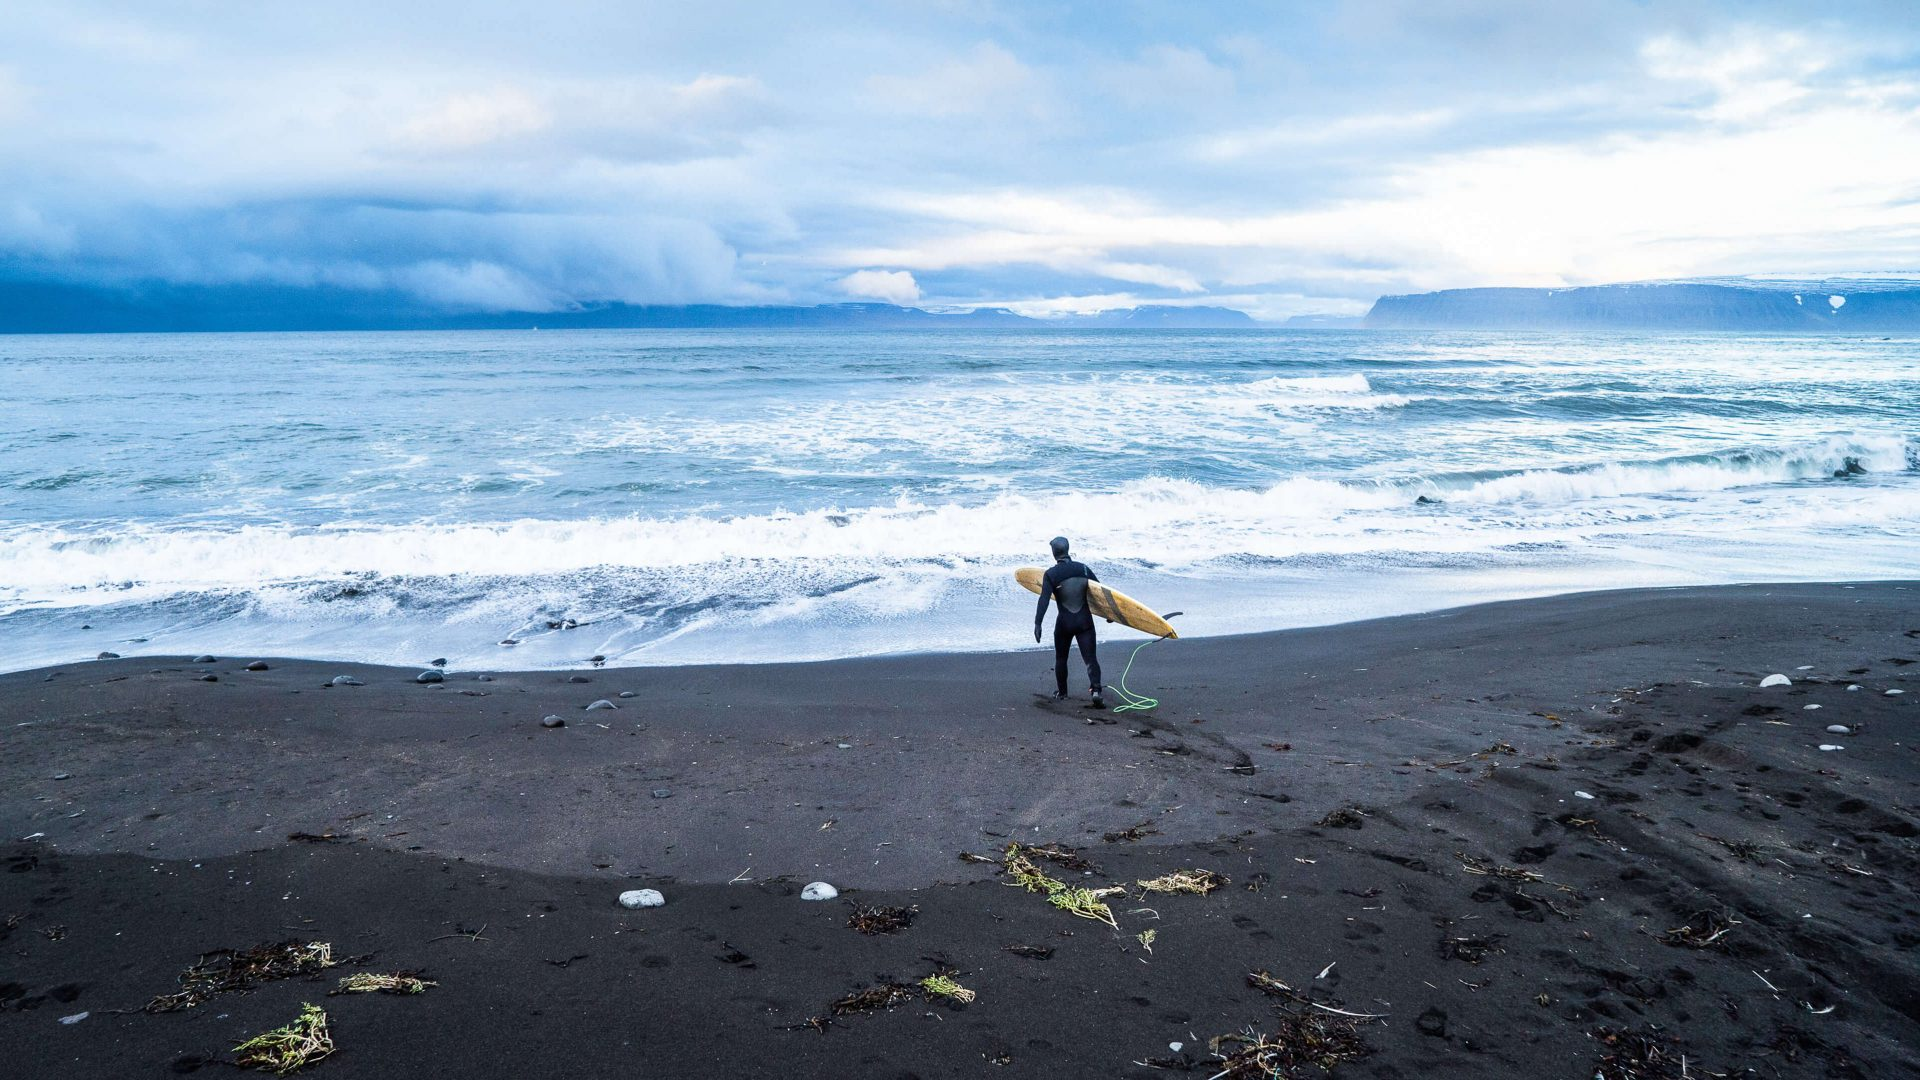 Meet the father-figure of Icelandic surfing